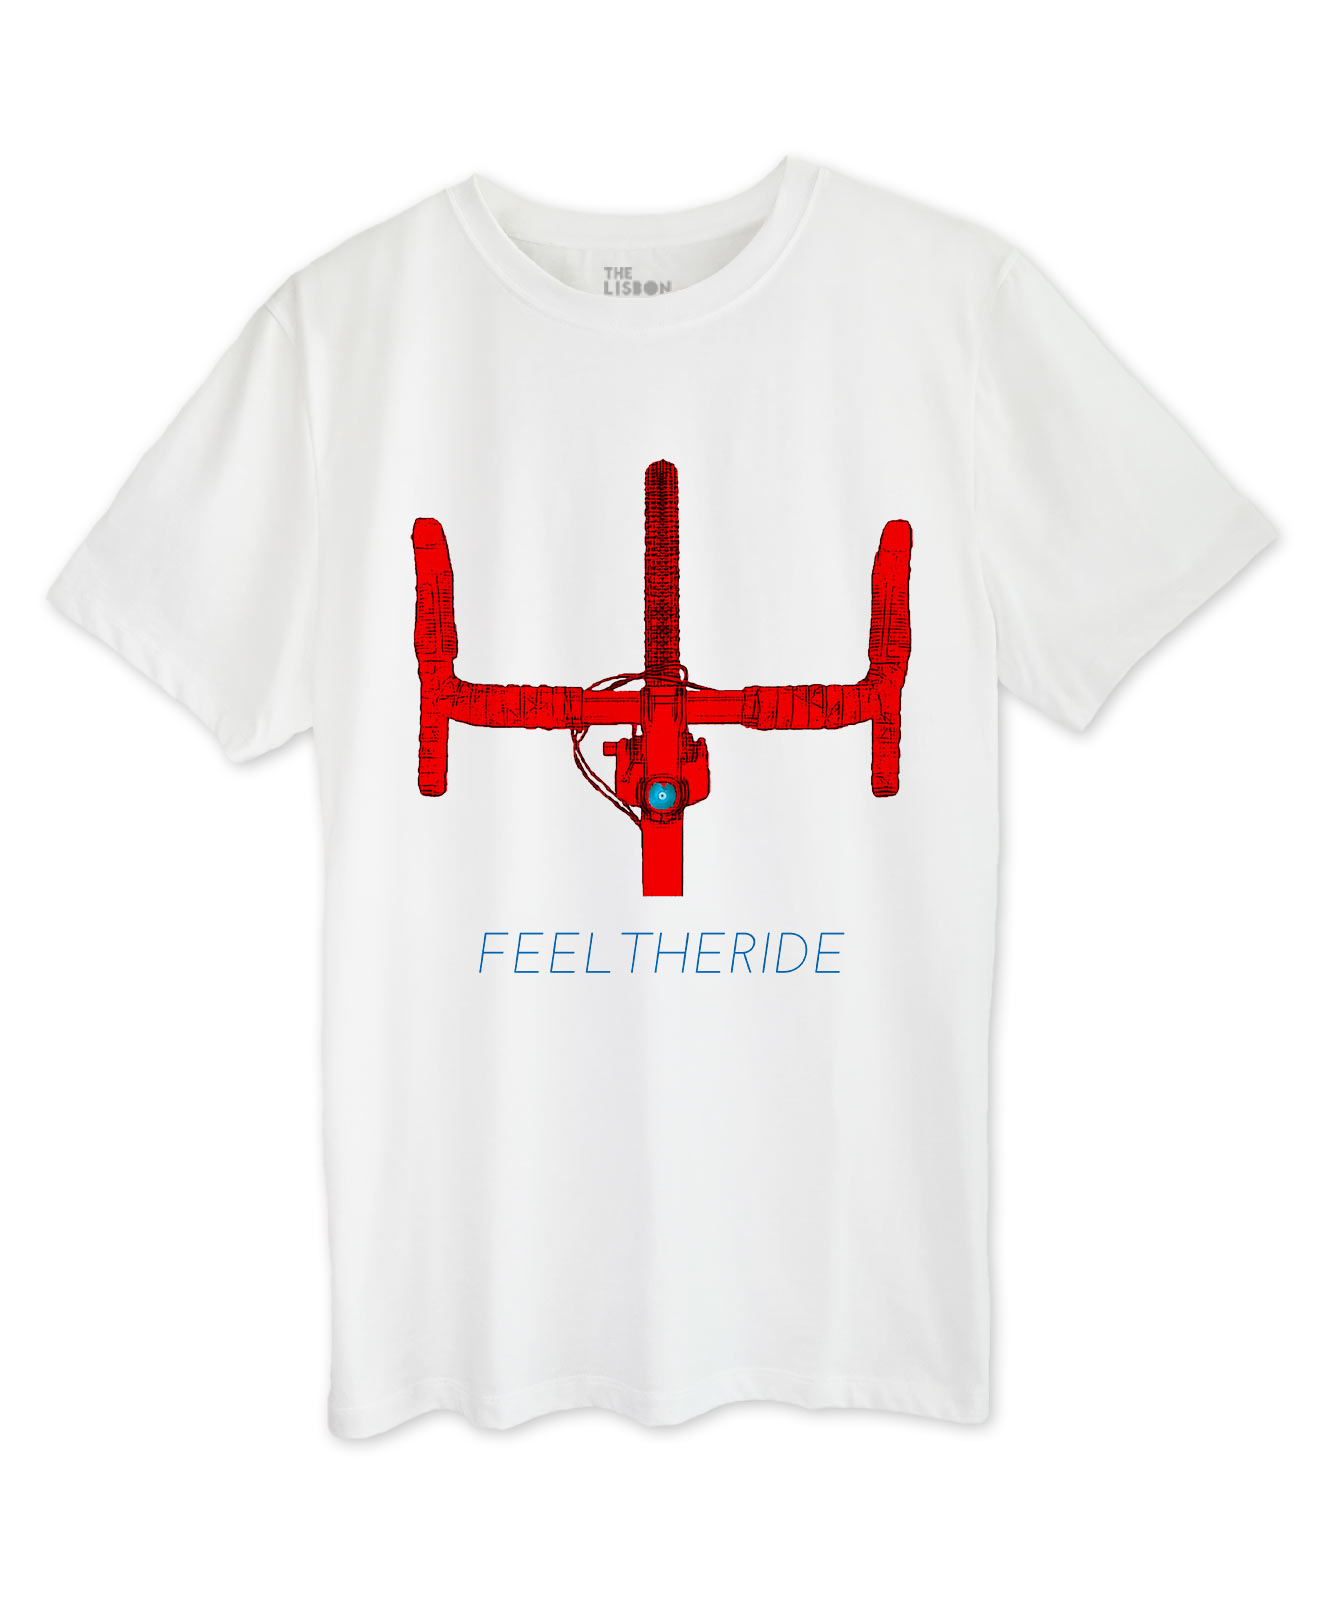 Road Bike Handlebar White T-shirt red printing part of bikes collection